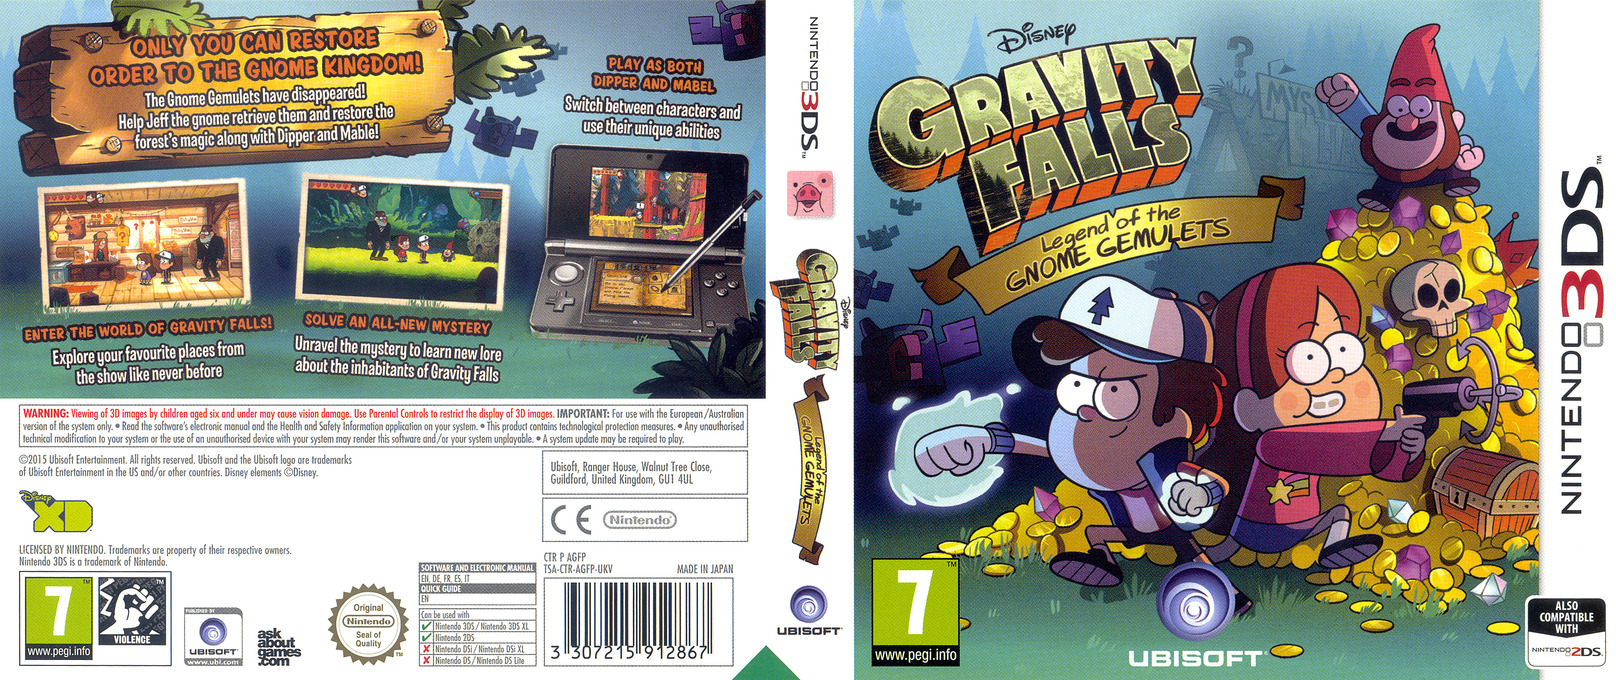 Gravity Falls - Legend of the Gnome Gemulets 3DS coverfullHQ (AGFP)